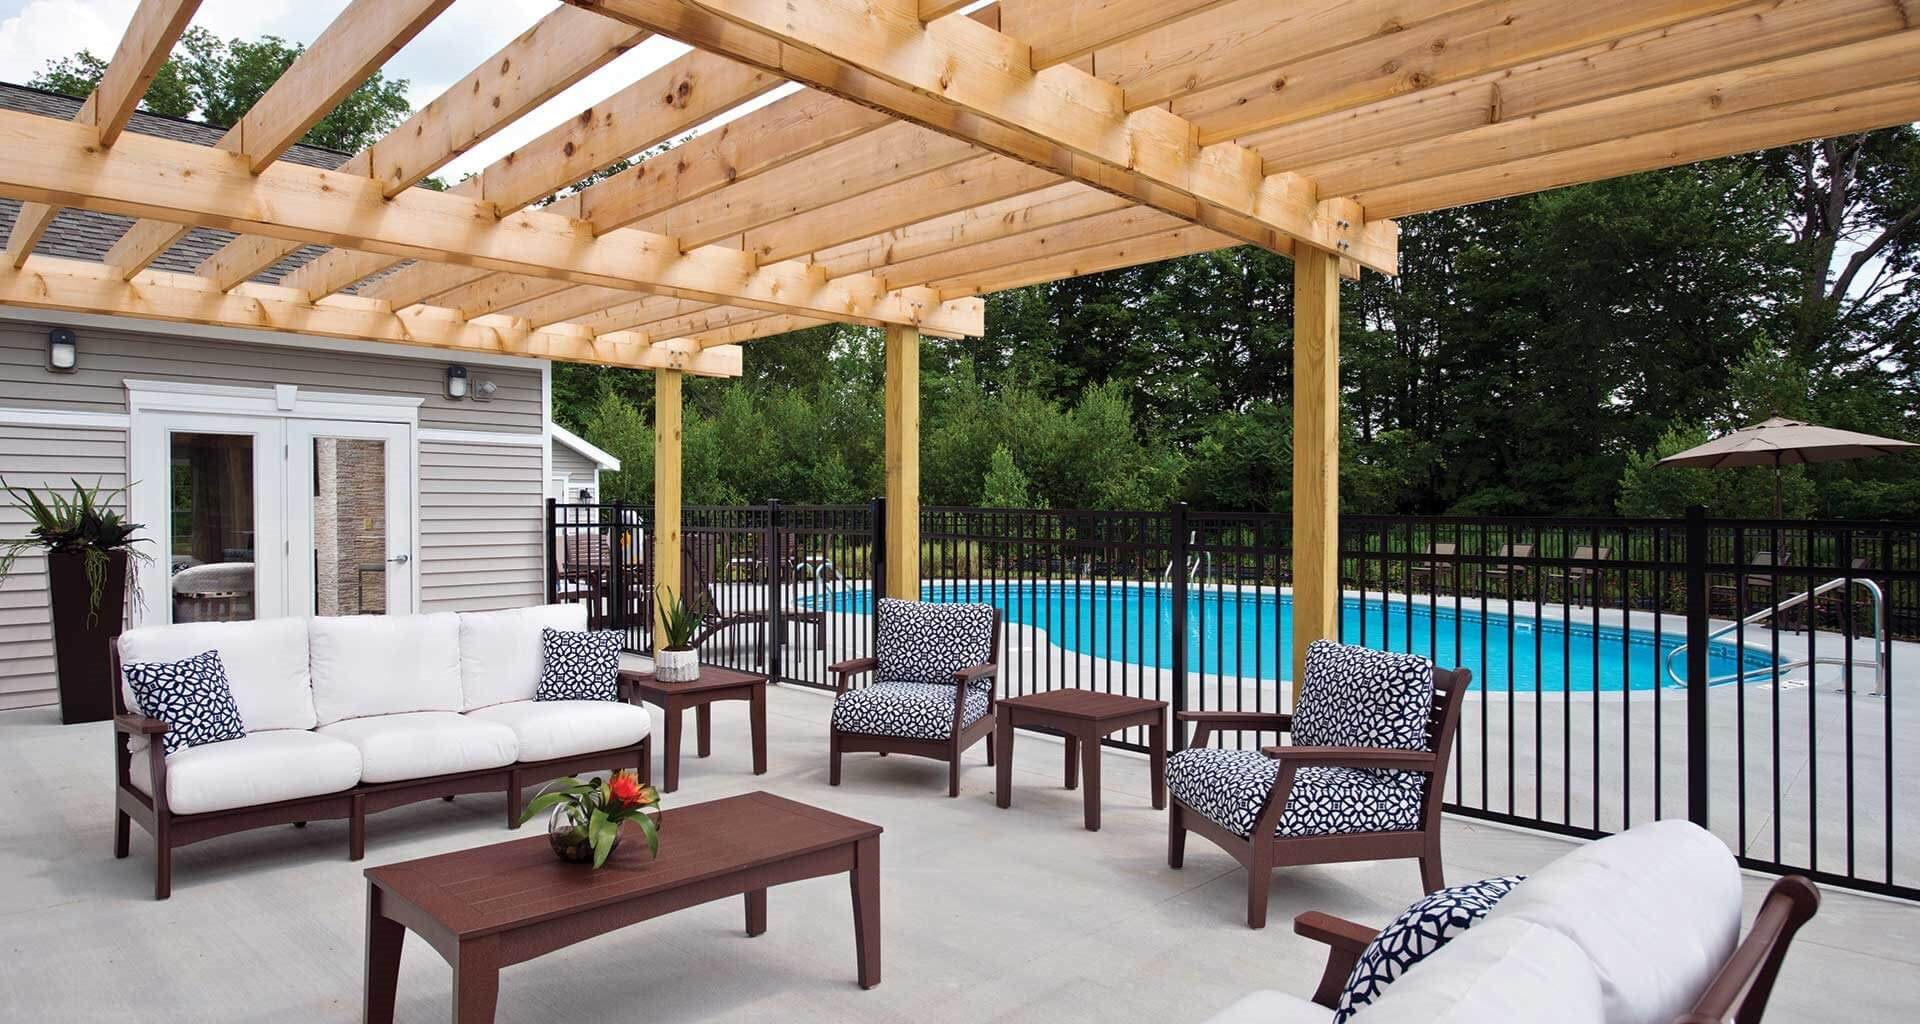 Outdoor Pool at Deerfield Place Luxury Apartments, Utica, NY